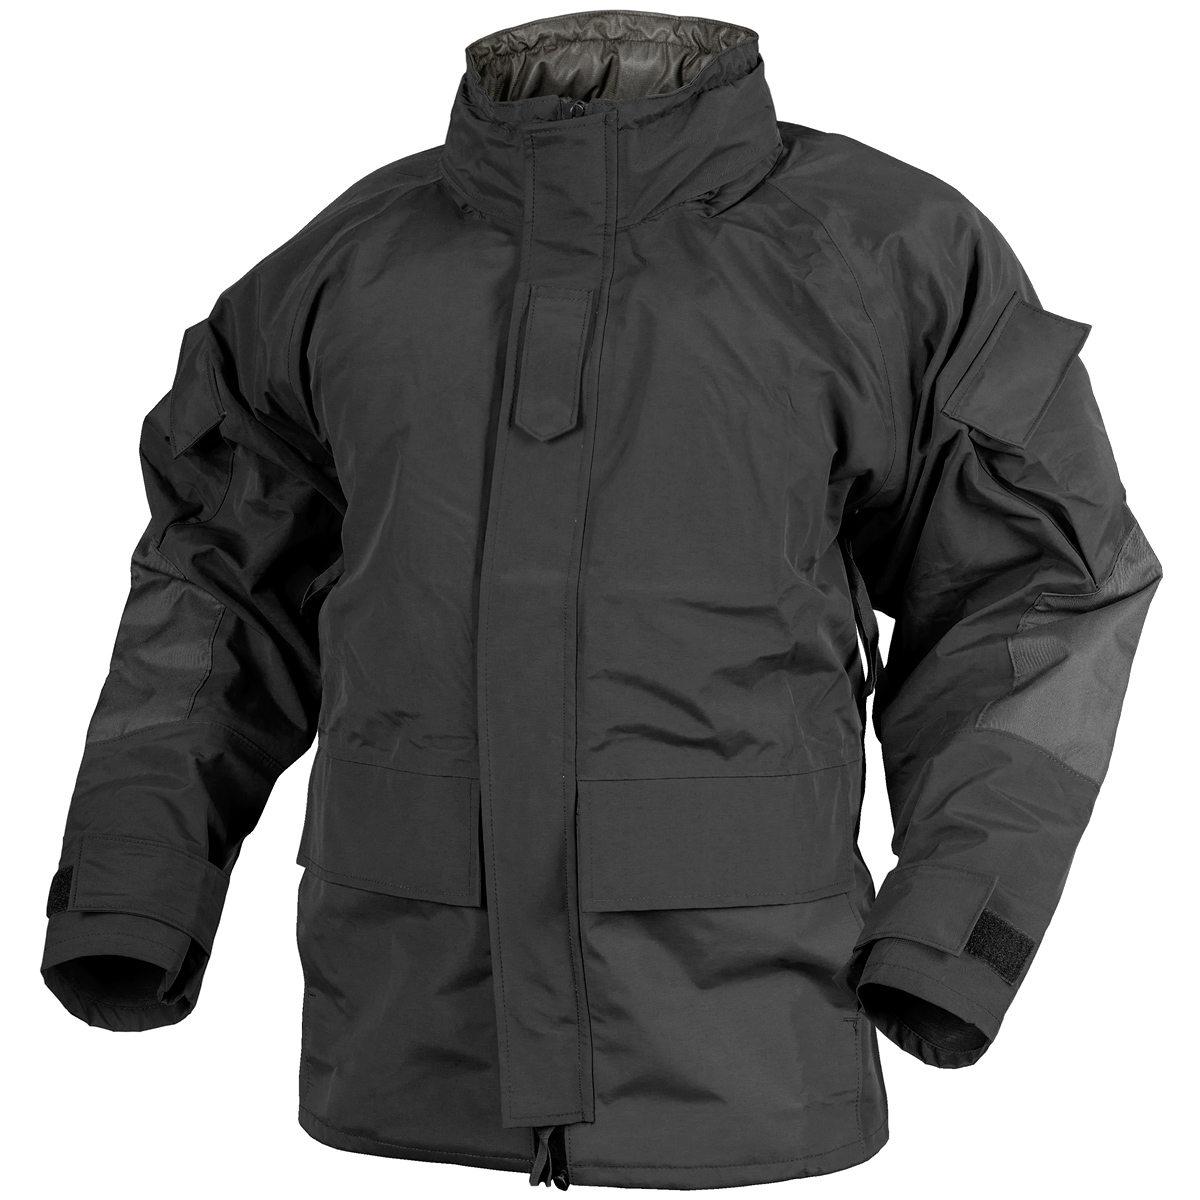 Find great deals on eBay for black parka jacket. Shop with confidence.